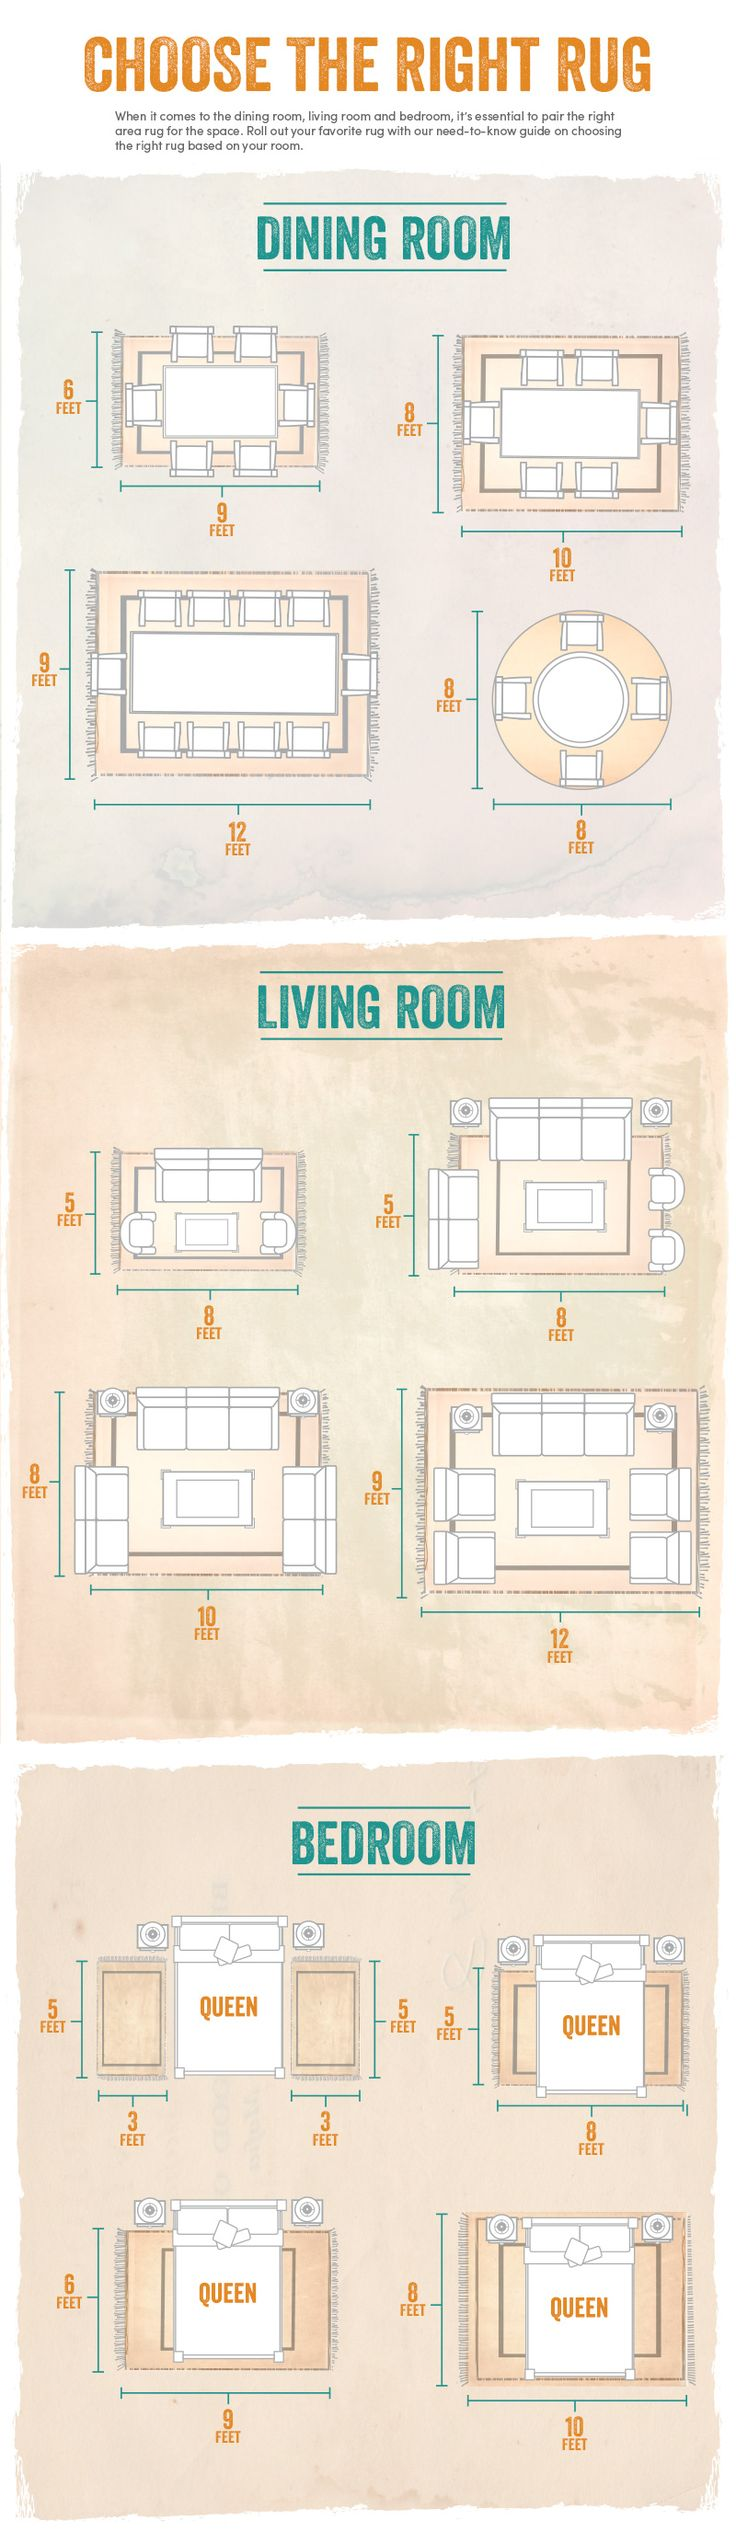 Living Room Furniture Arrangement 1000 Ideas About Furniture Layout On Pinterest Furniture